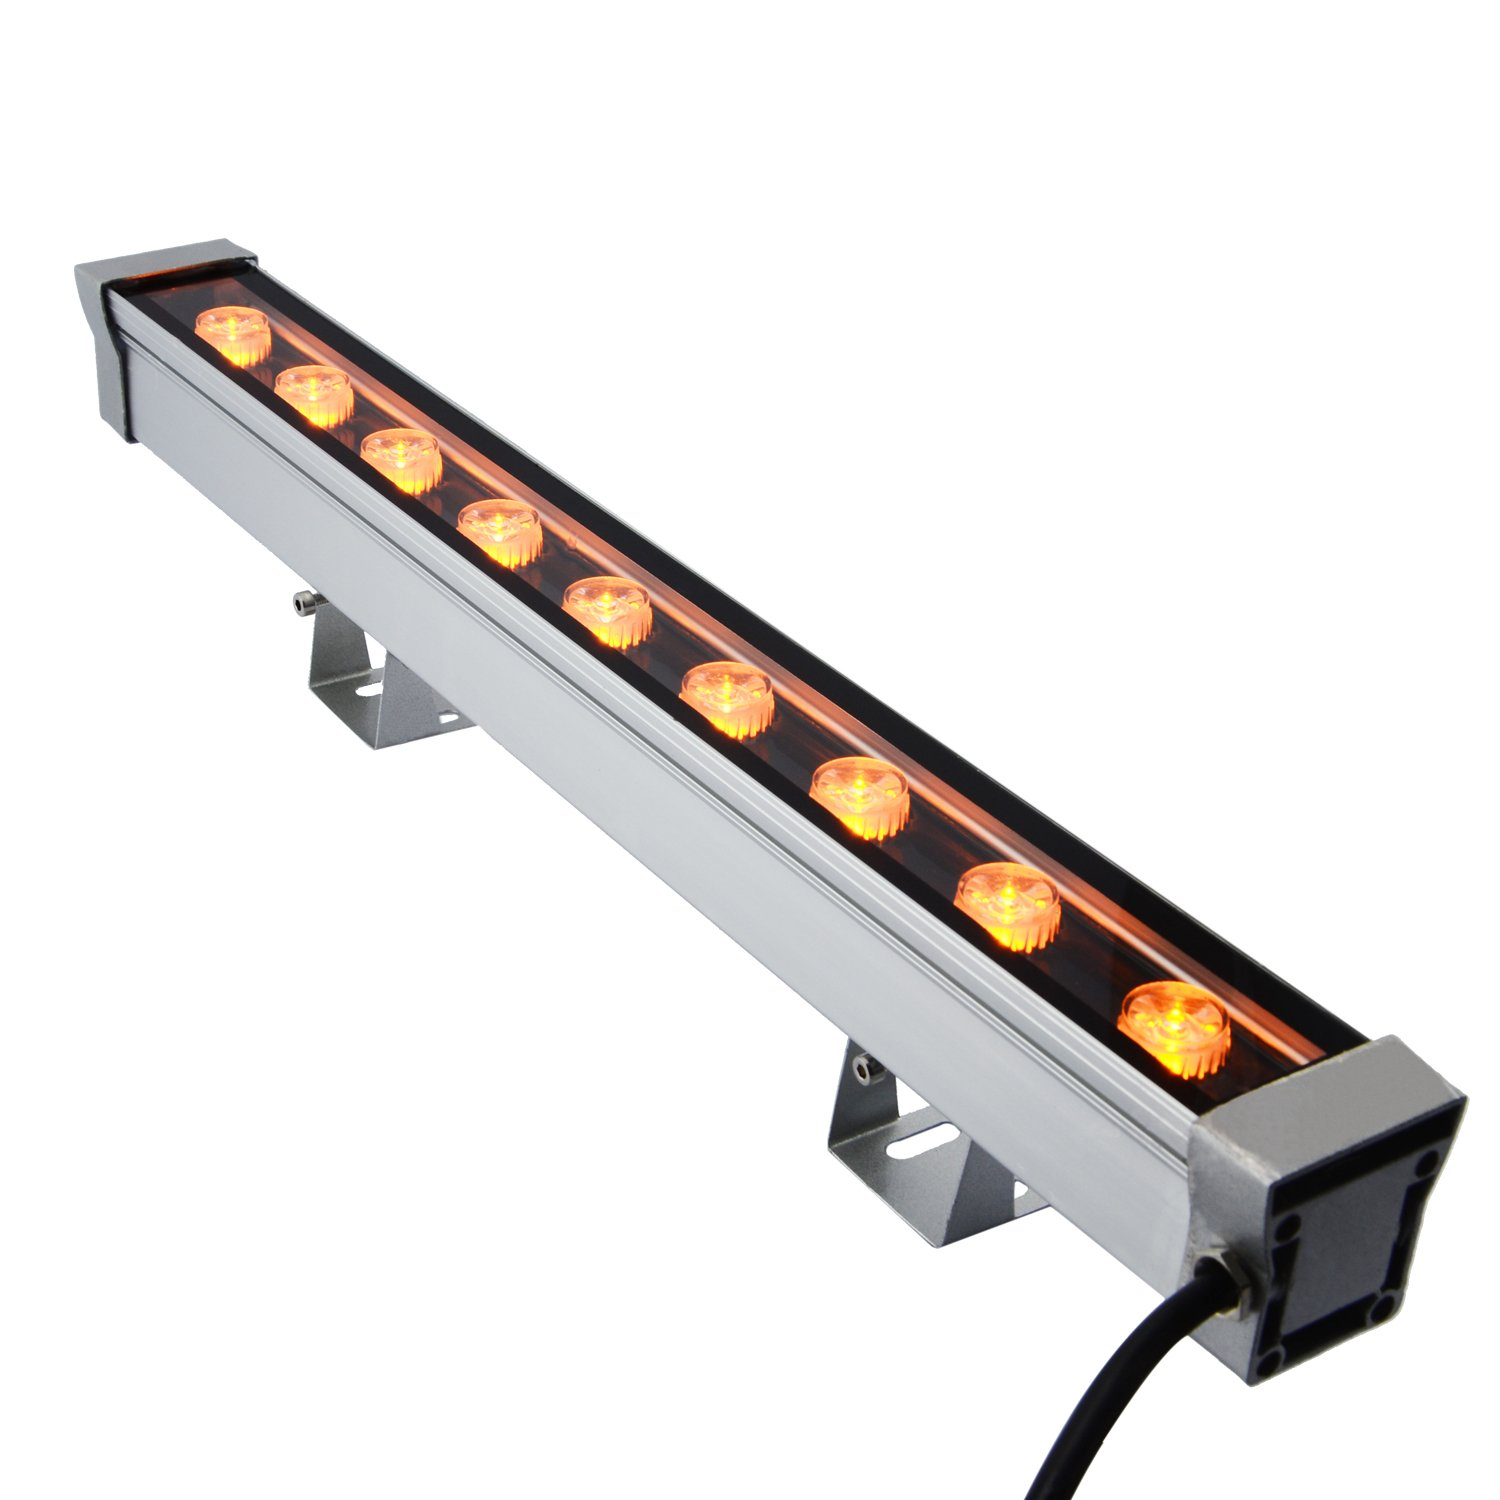 RSN LED Wall Washer 9W Linear Bar Light Yellow Color IP65 Waterproof 2 Years Warranty DJ Party Bar Show LED Stage Light